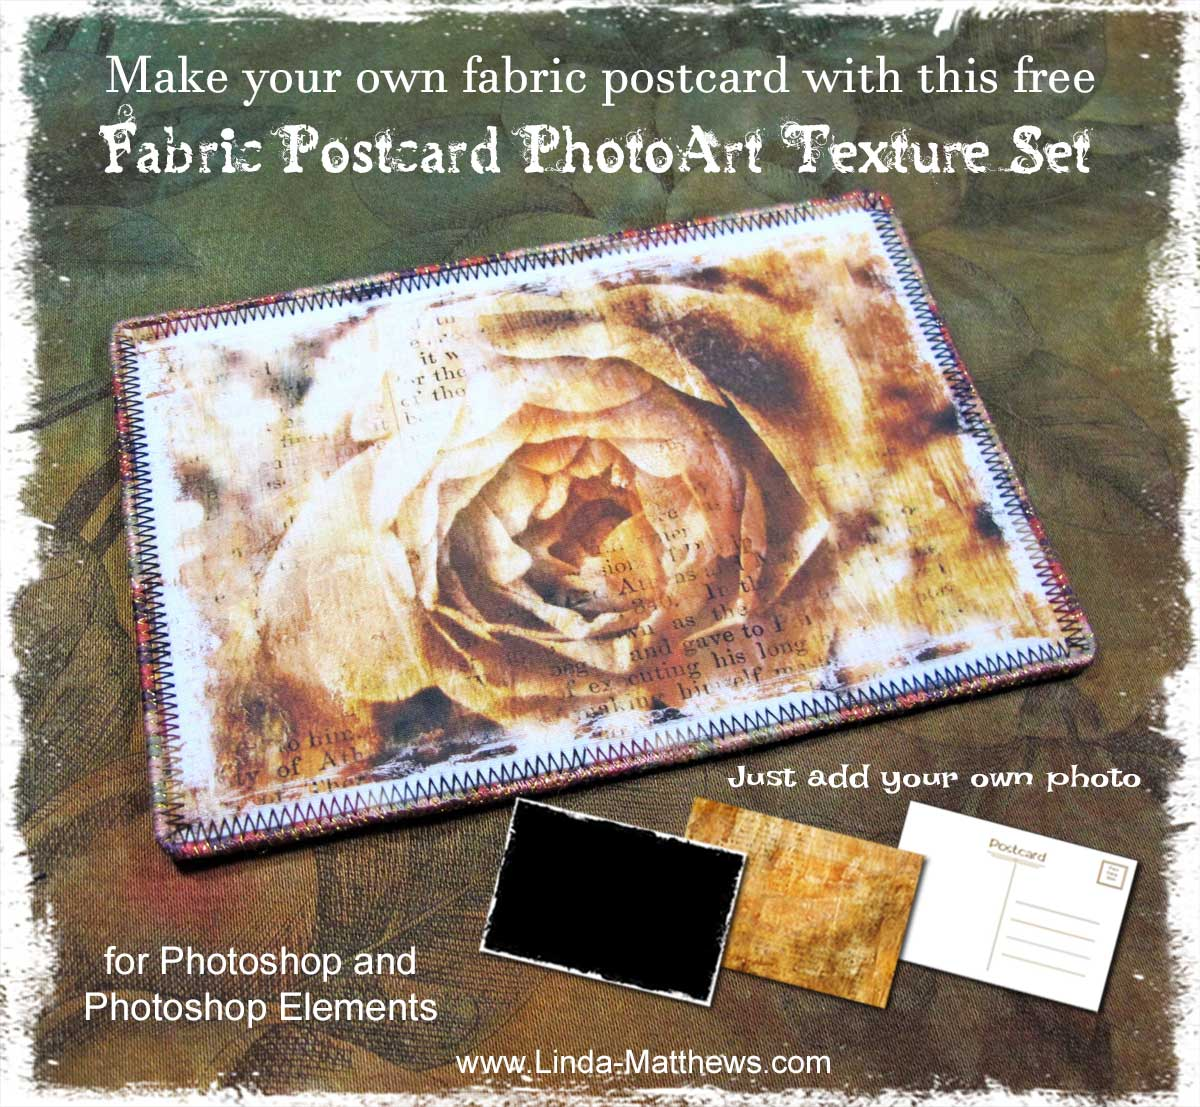 Free Tutorial and Photoshop PhotoArt Texture Set: Make your own Fabric Postcard